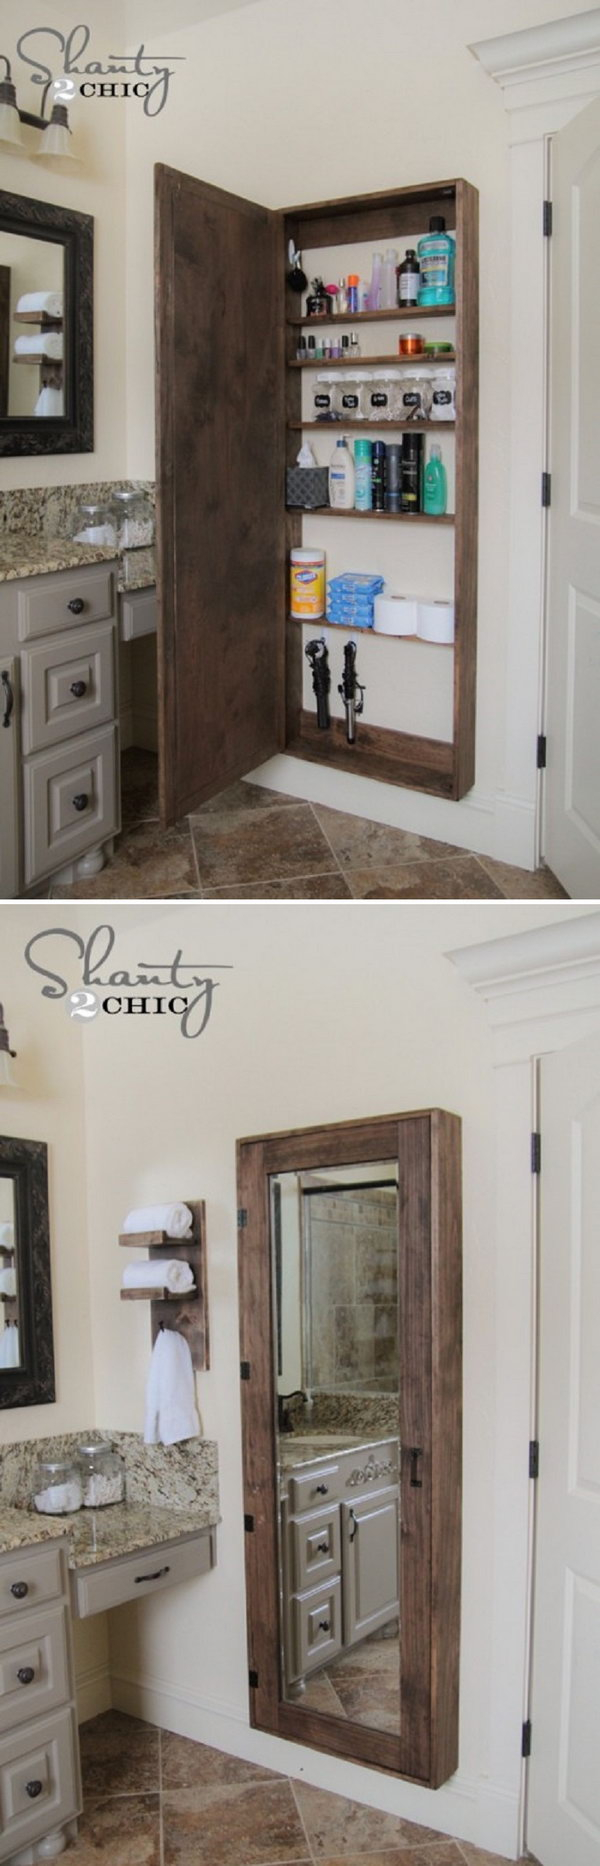 20 Clever Bathroom Storage Ideas Hative with regard to proportions 600 X 1866